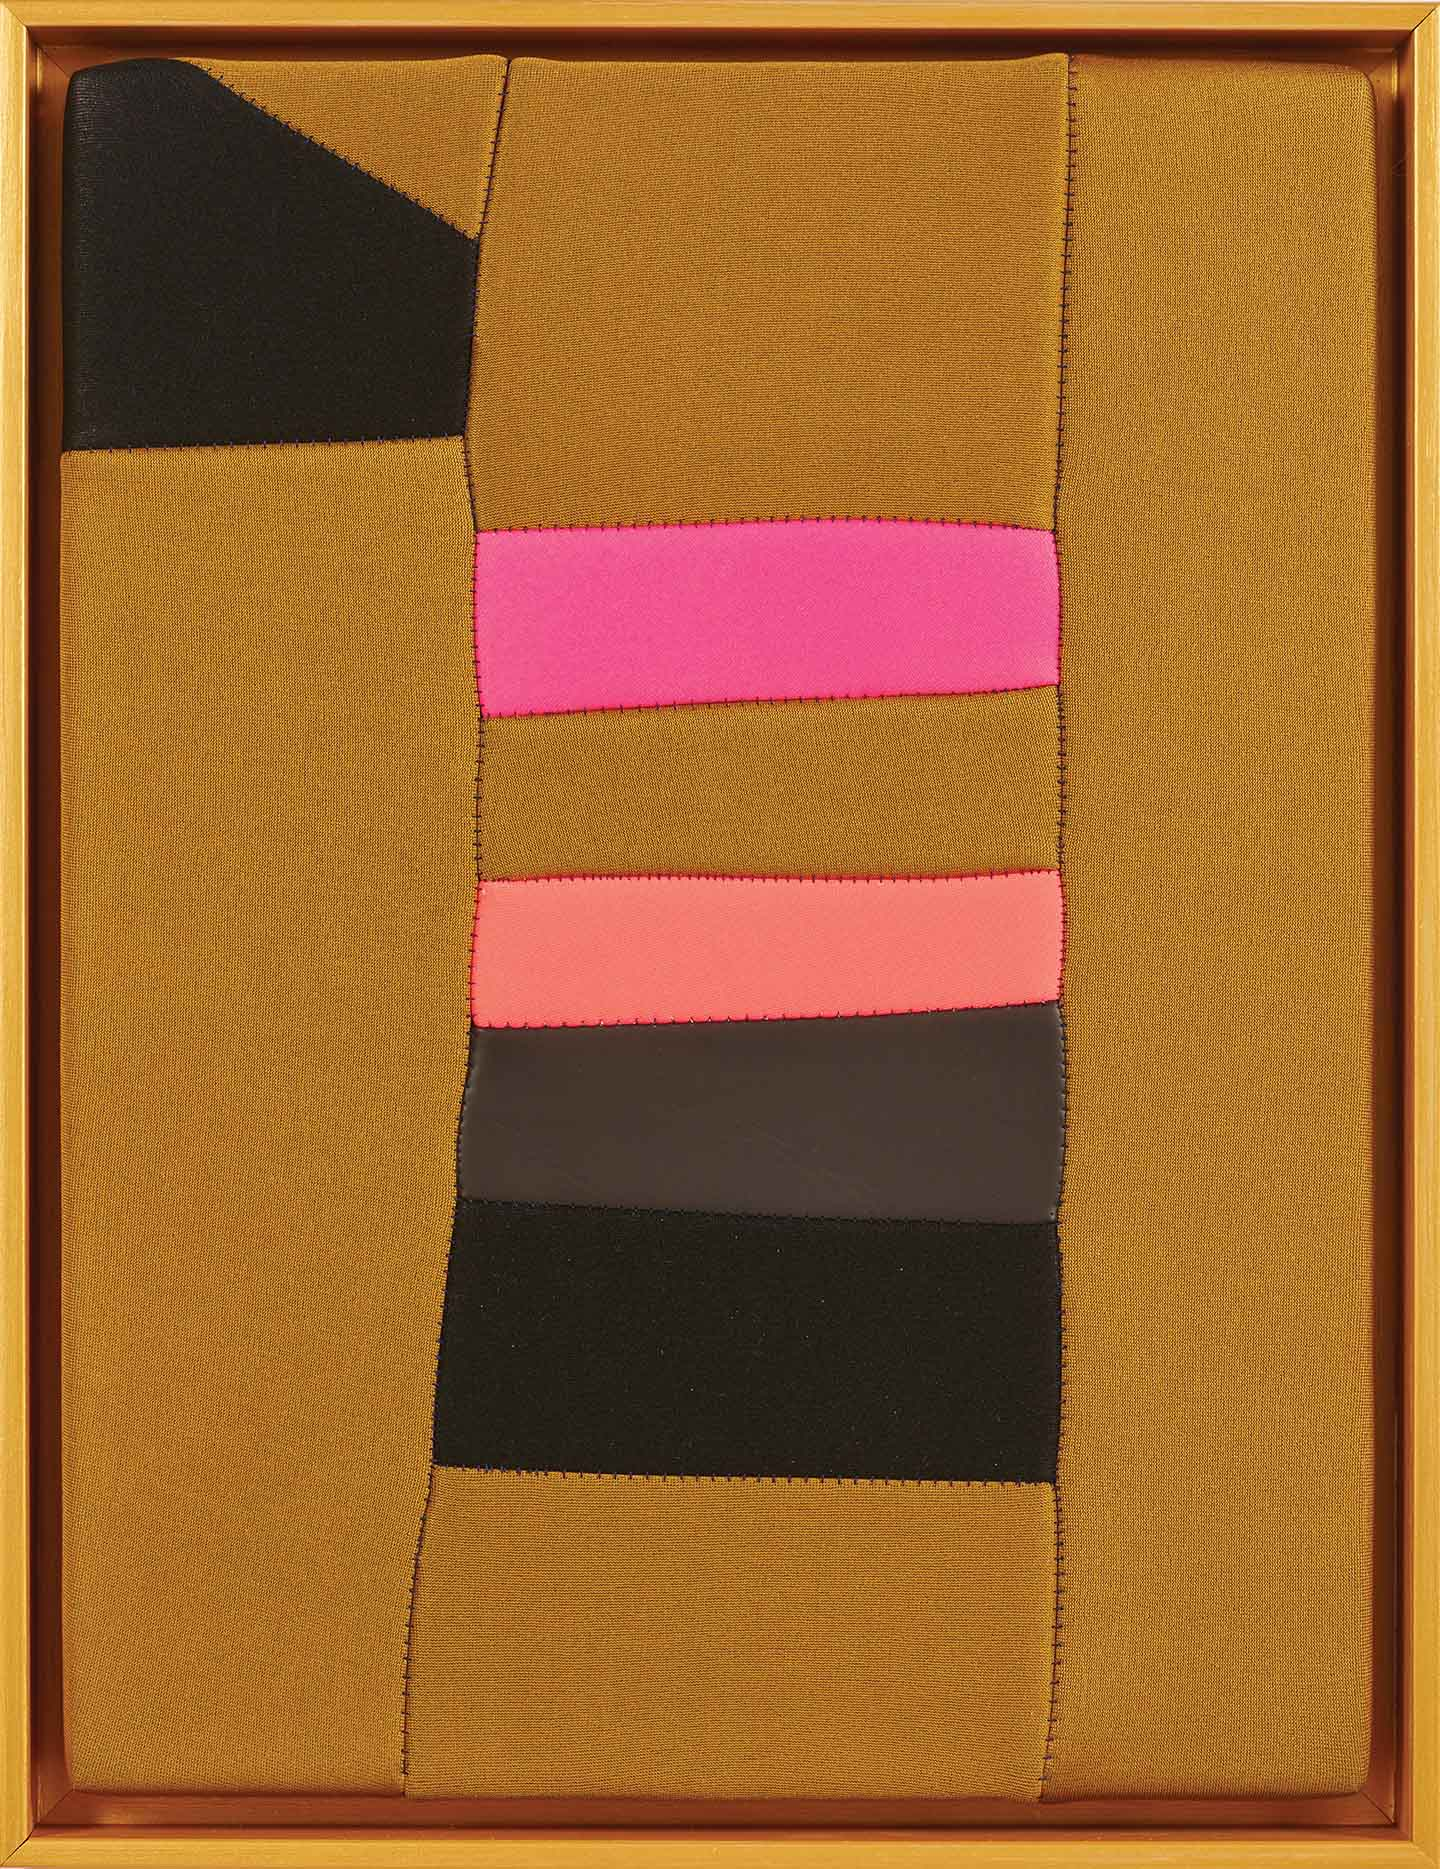 Zee  2019, stretched found neoprene with metallic painted timber frame, 44 x 34 cm  SOLD